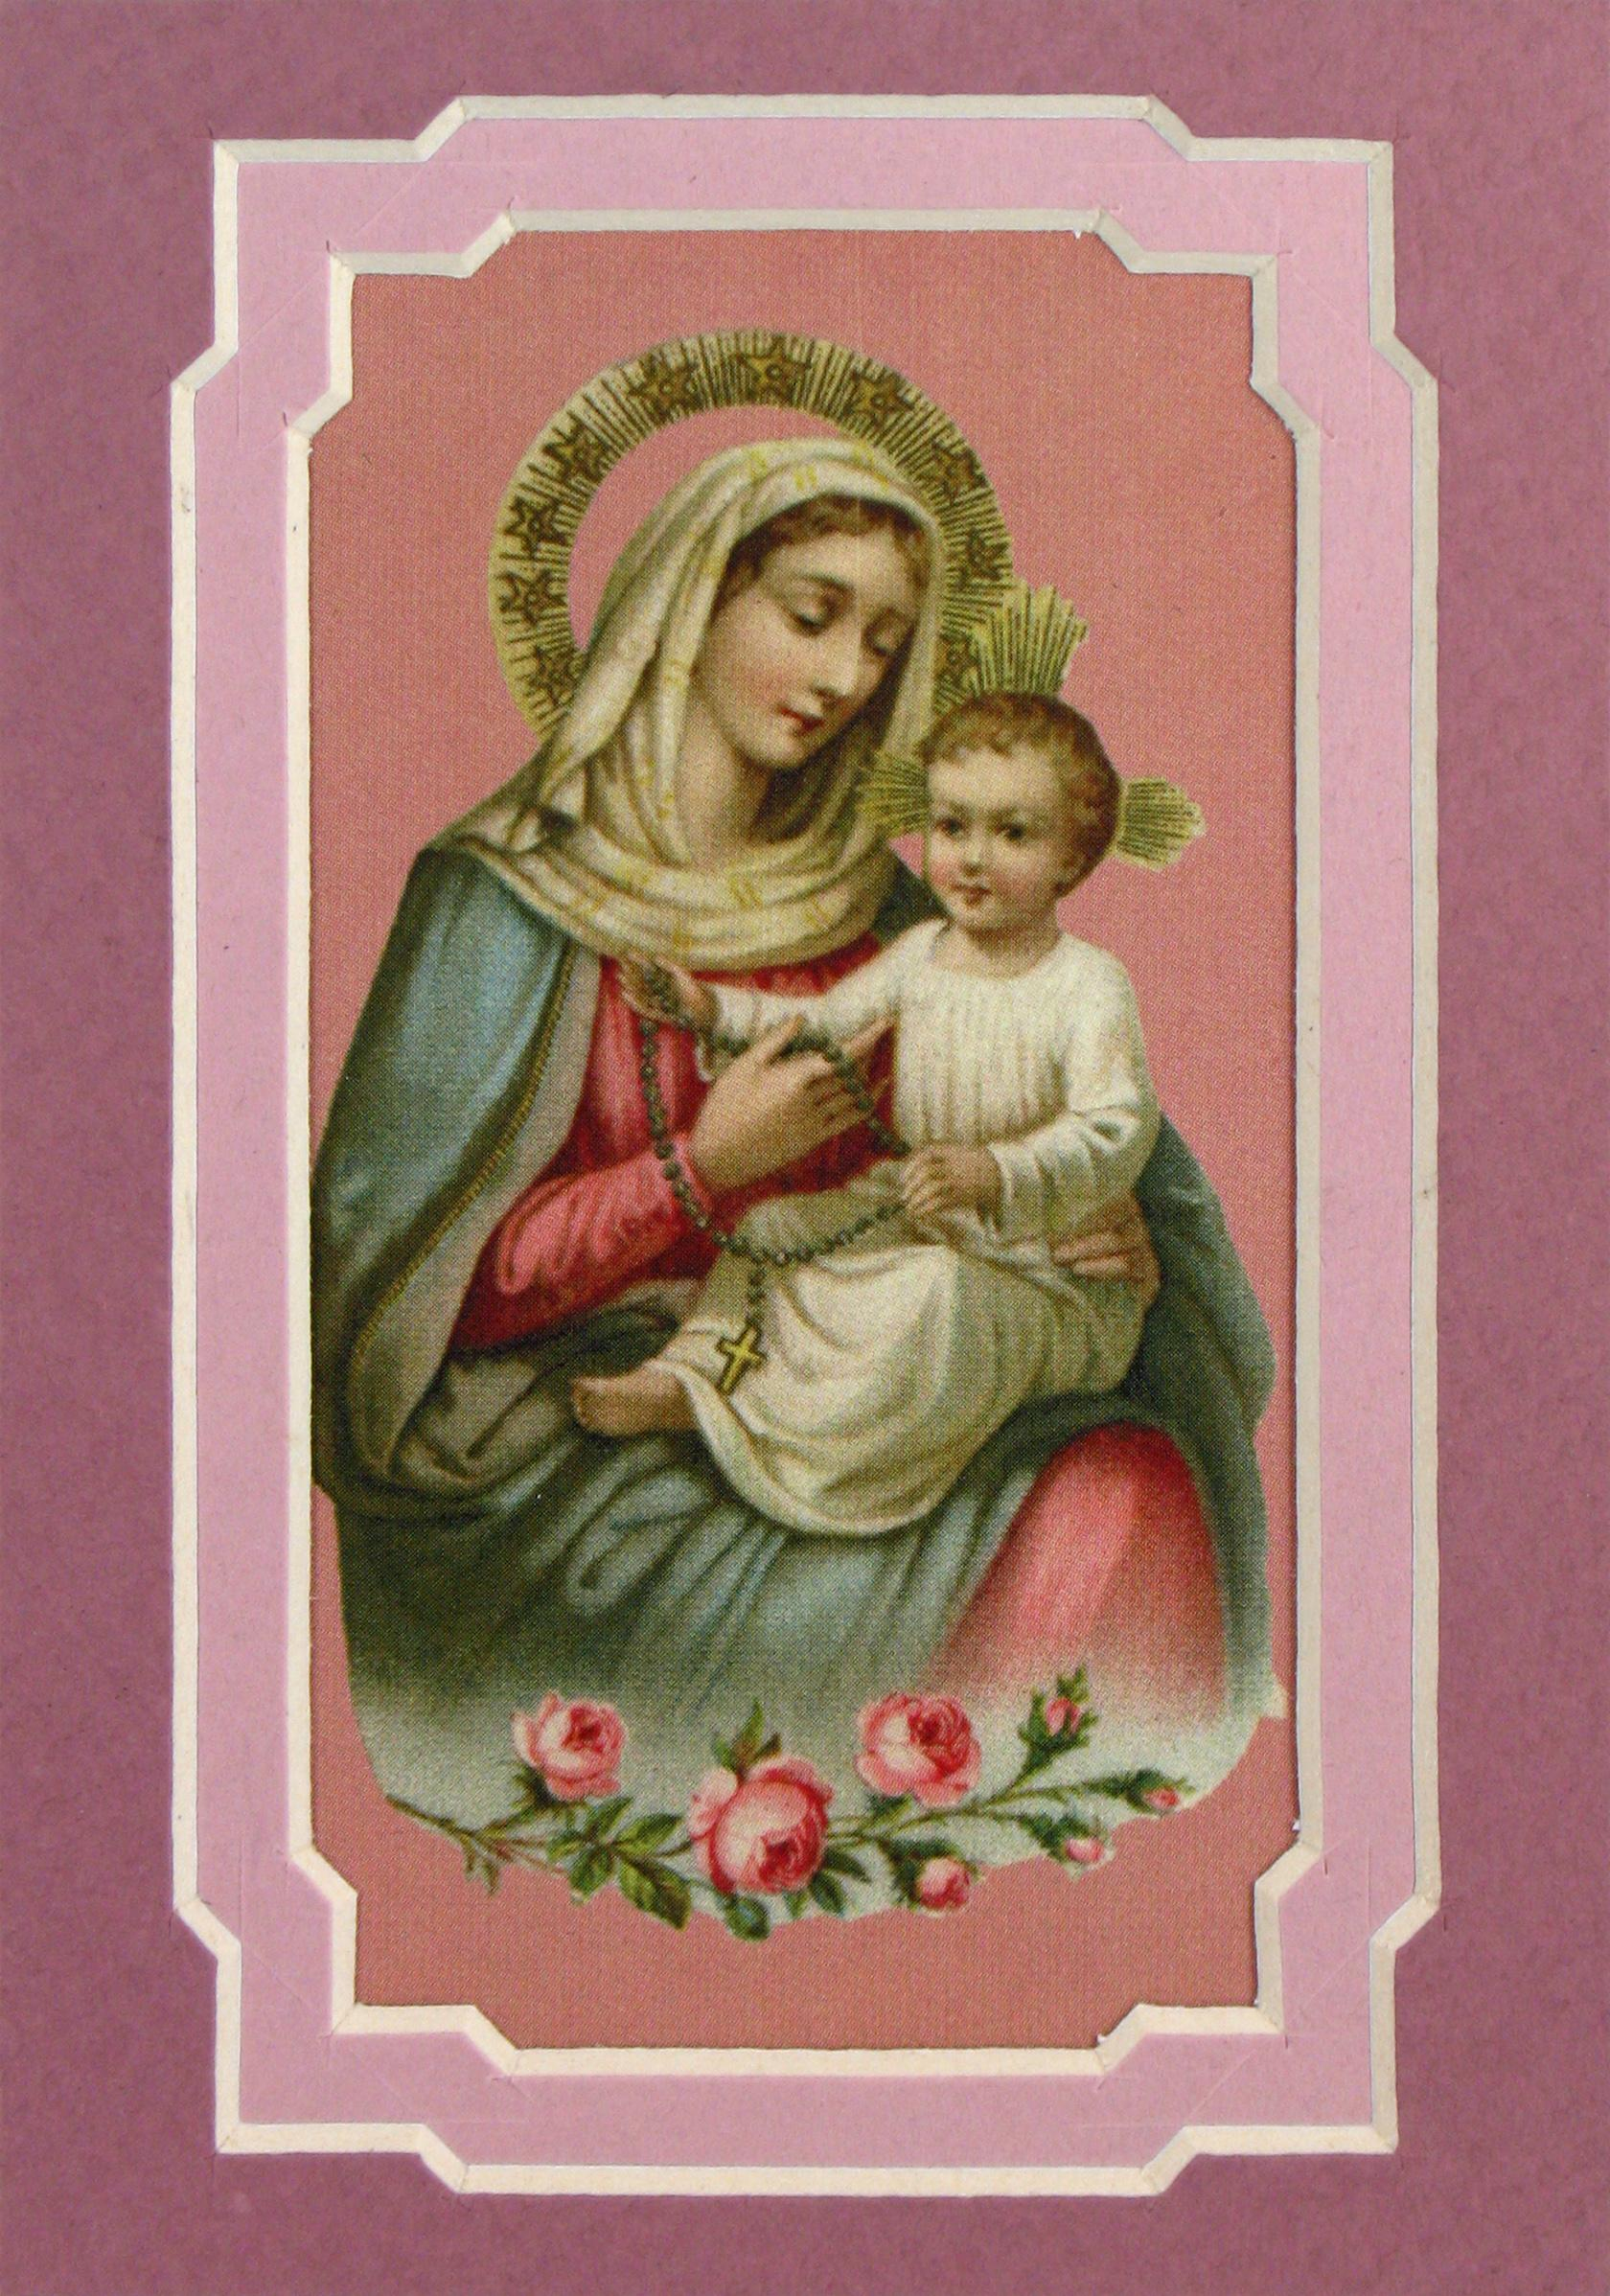 Our Lady of the Rosary 3x5 Prayerful Mat #35MAT-OLR(b)